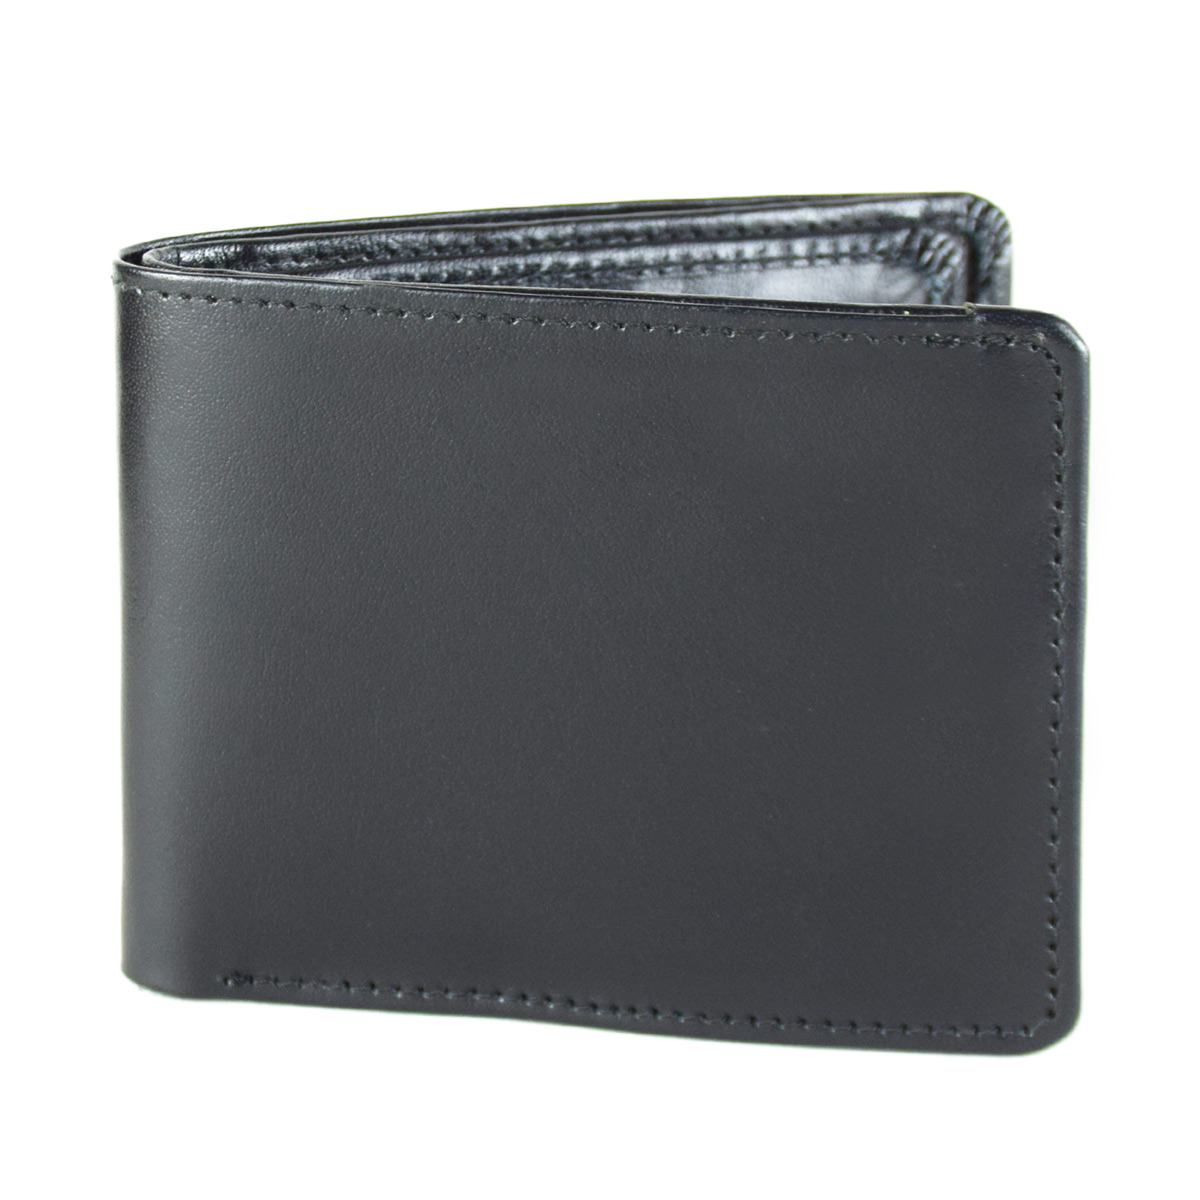 BLACK WALLET WITH SEPARATE CARD HOLDER